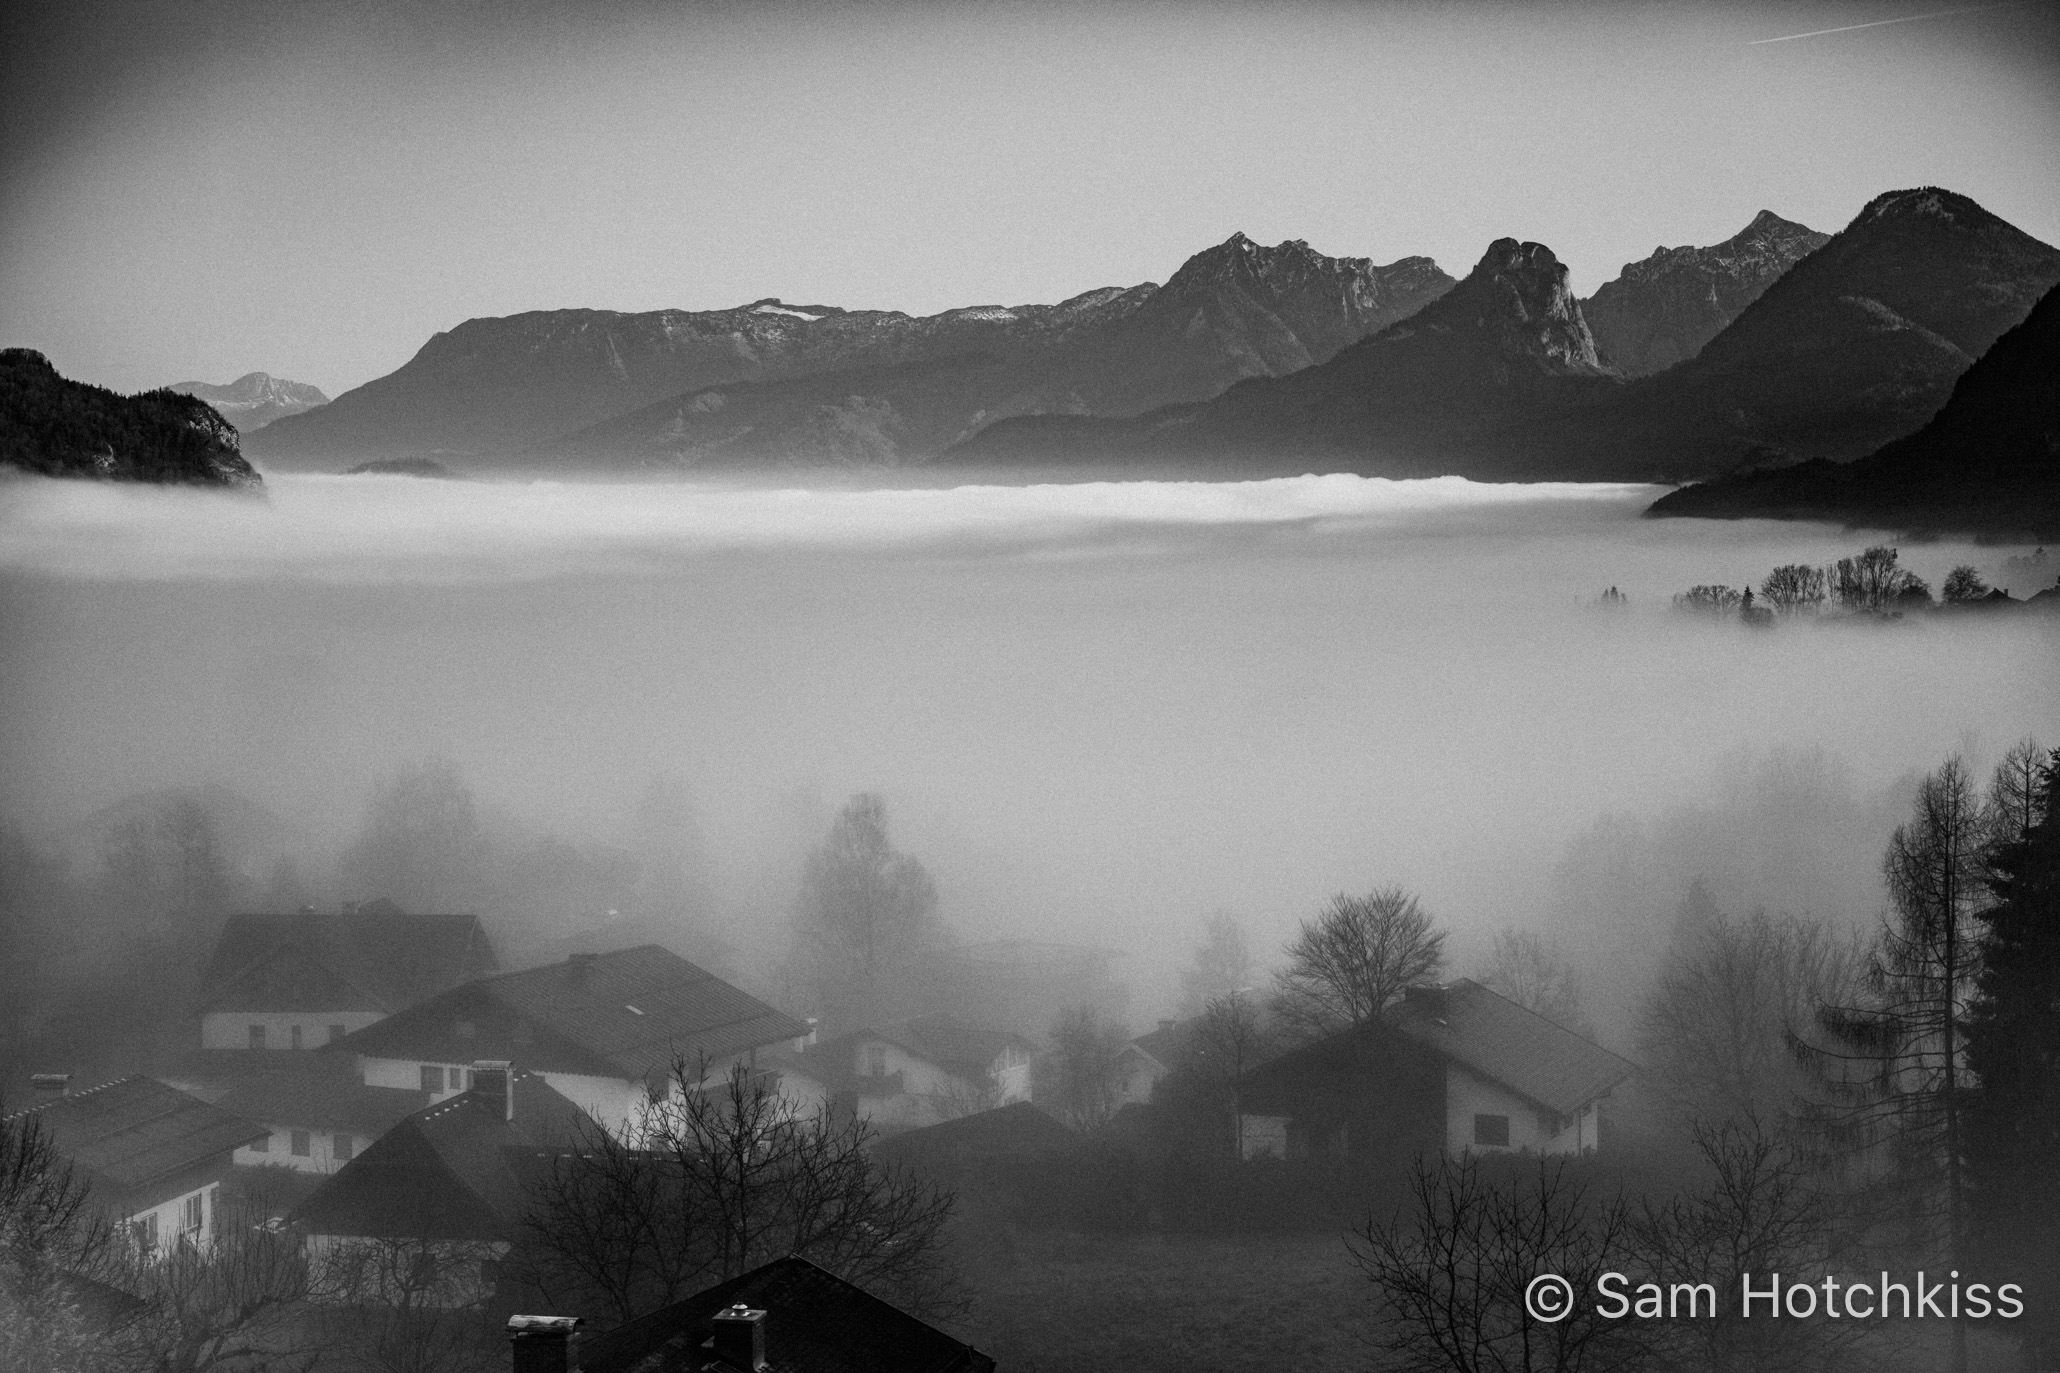 St. Gilgen, Austria, in the Clouds